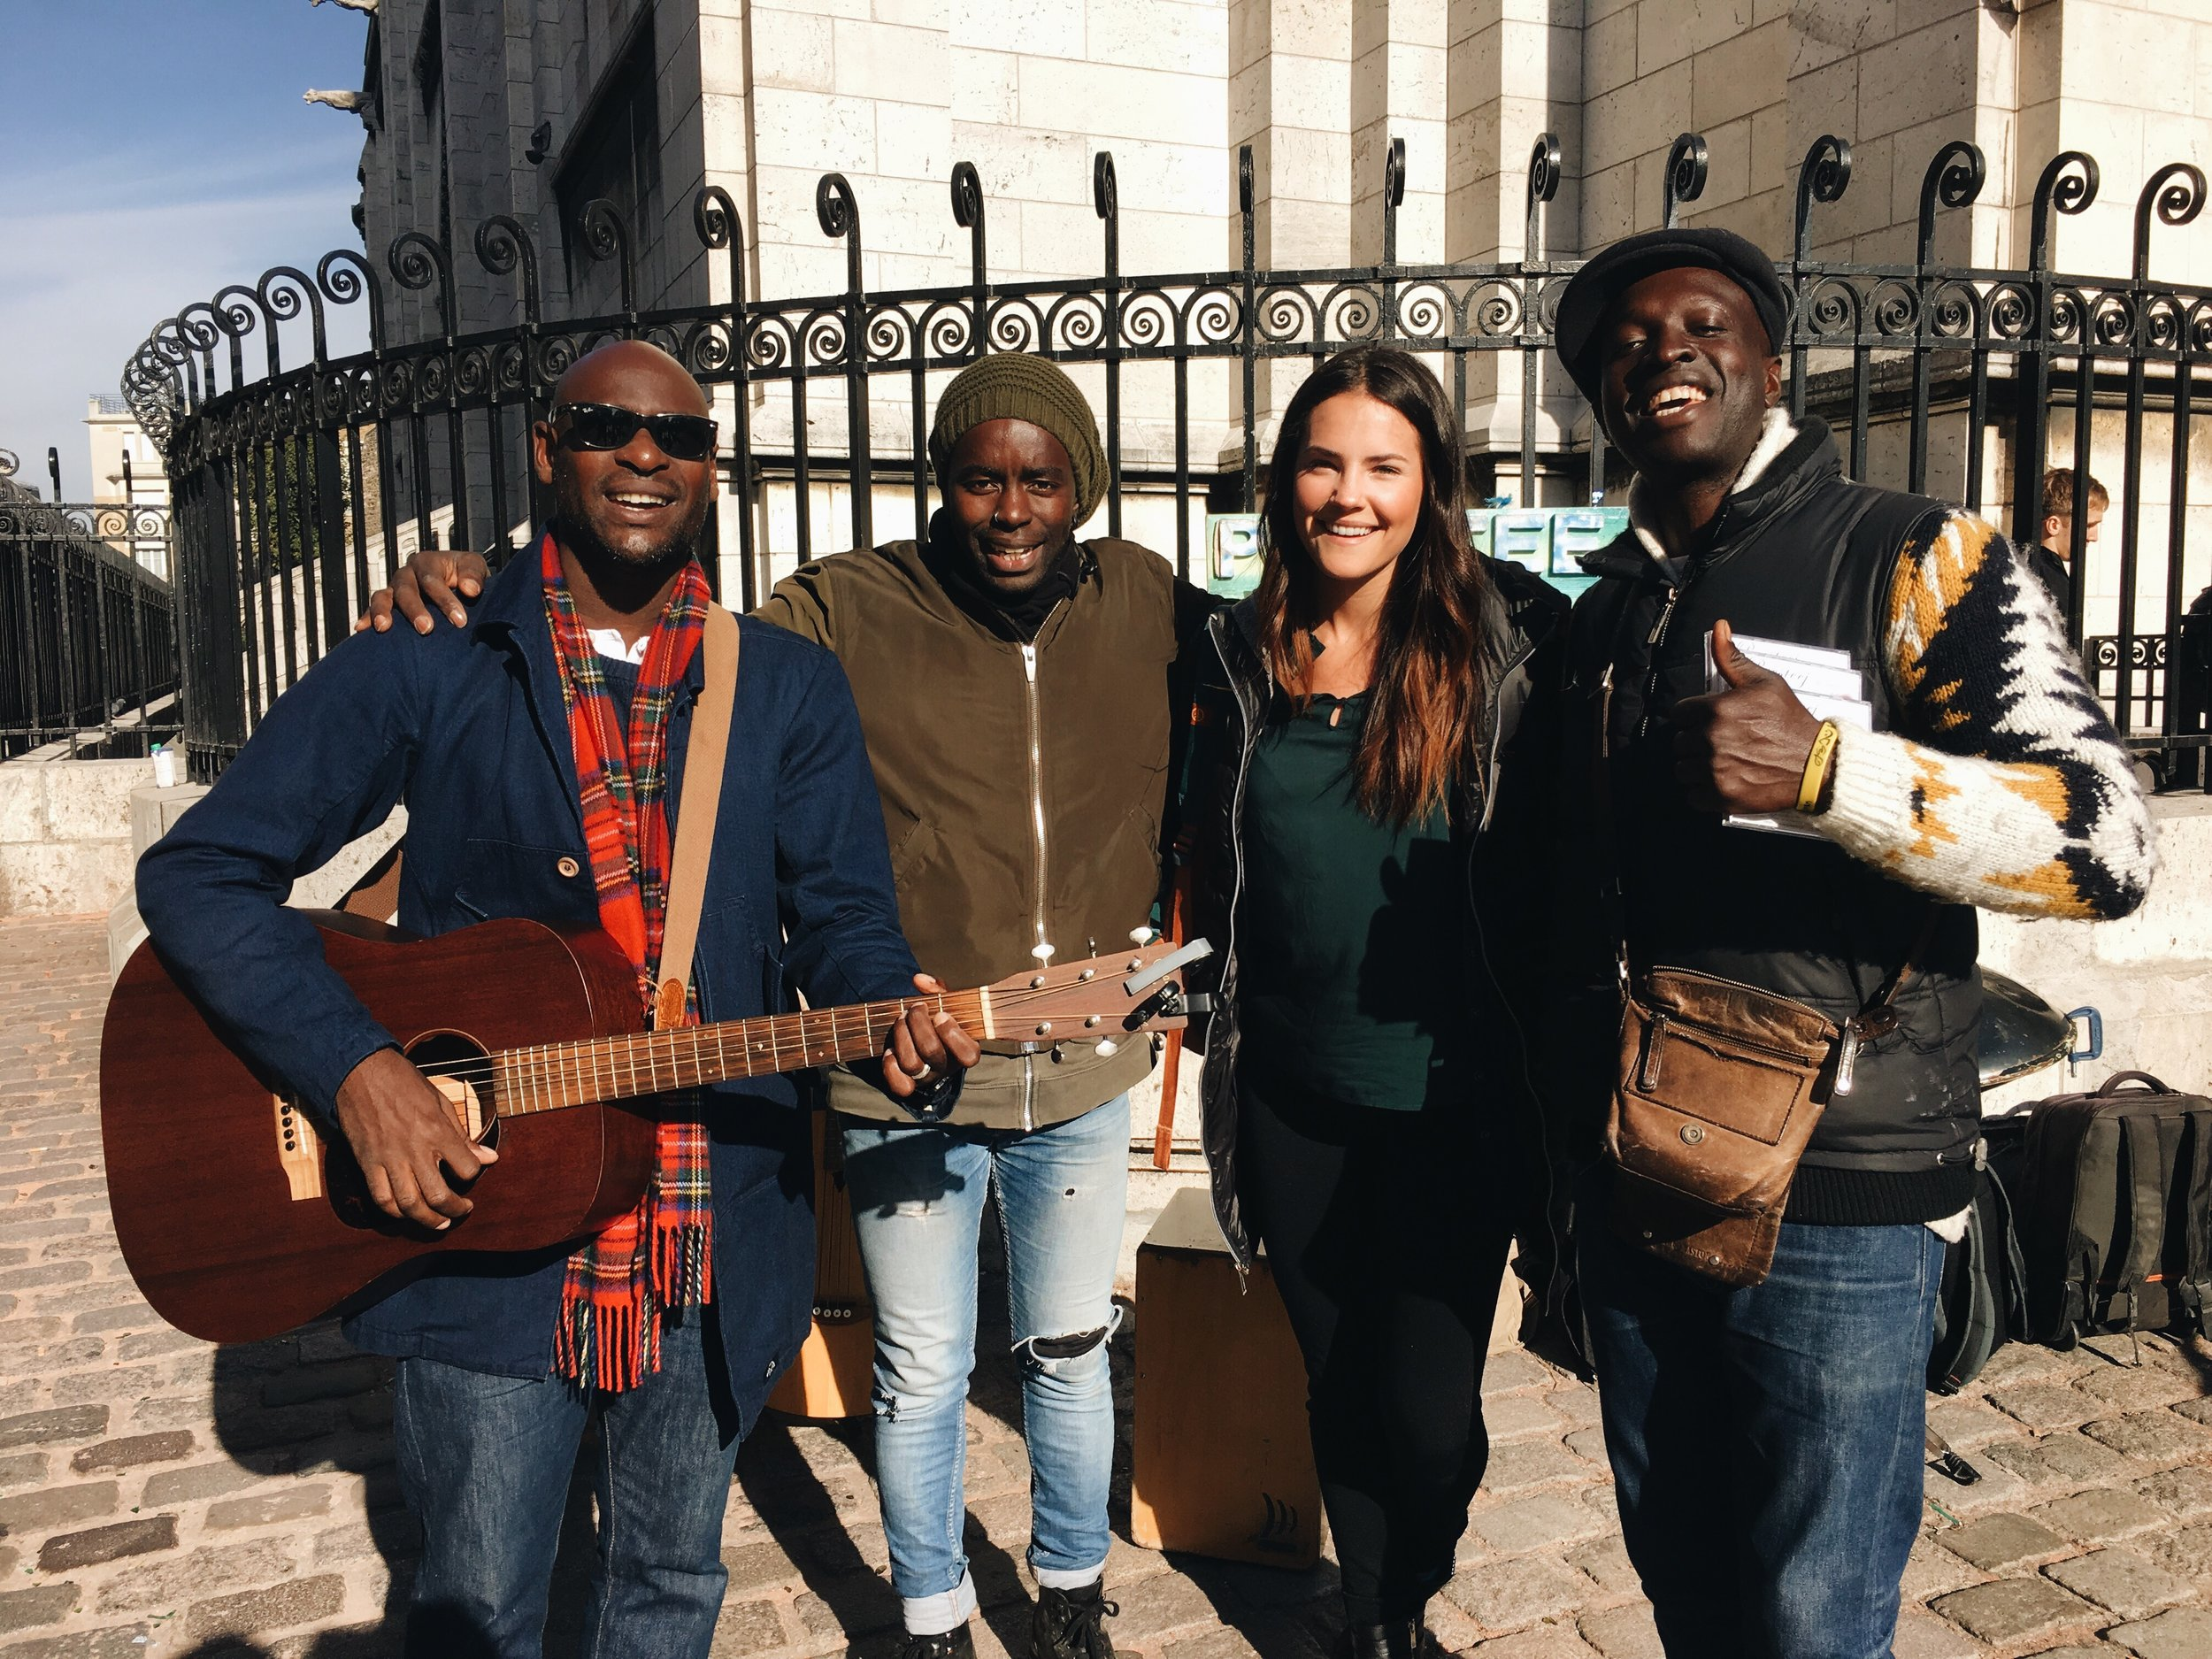 With the street musicians who had voices of angels!